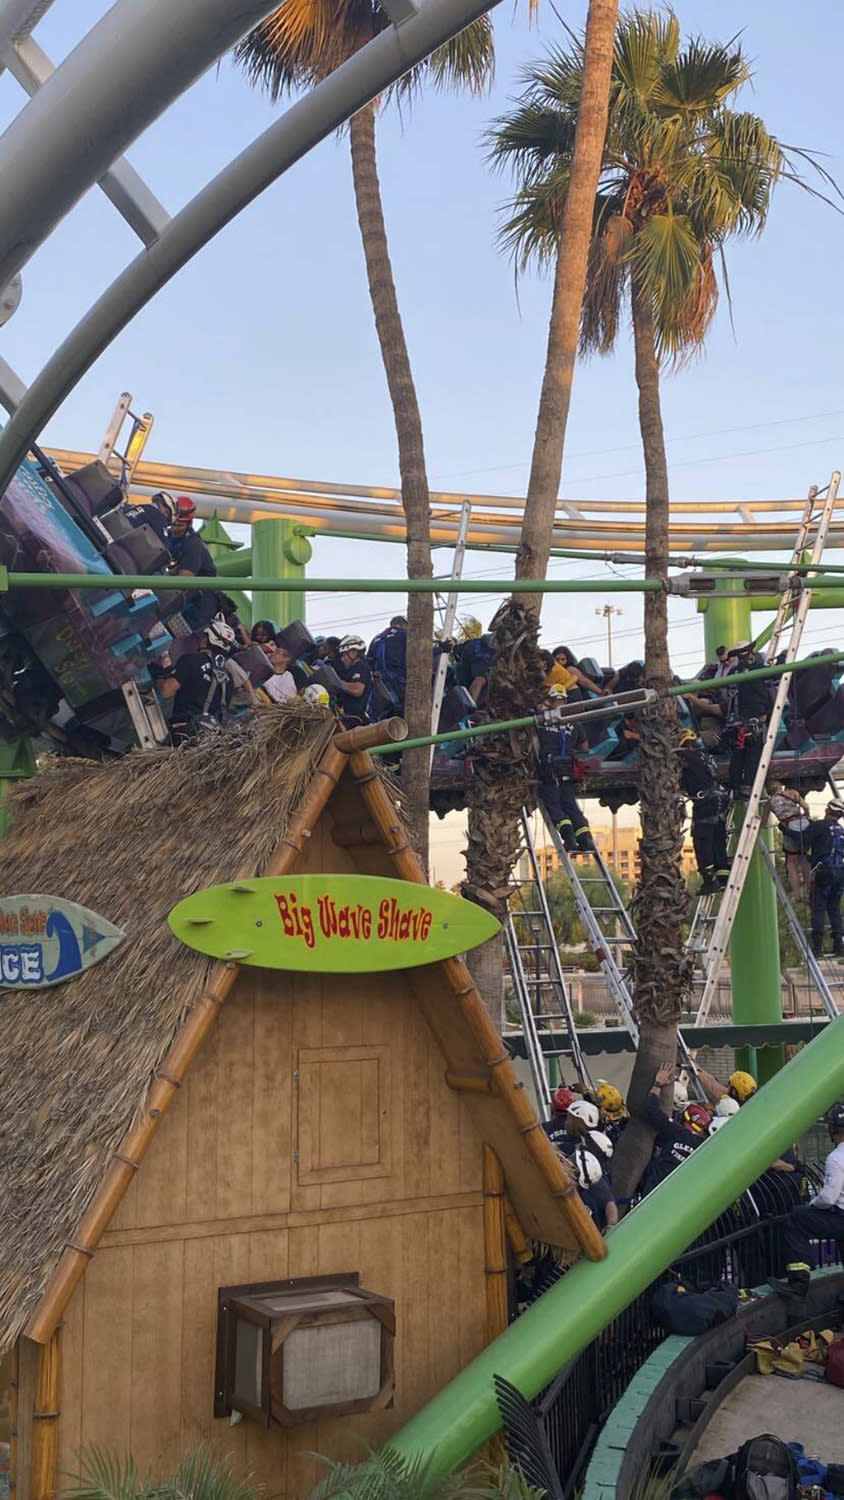 This photo provided by Phoenix Fire Department shows responders rescuing people stuck on a roller coaster at Castles N' Coasters on Saturday, May 15, 2021 in Phoenix. The Phoenix Fire Department said the ride got stuck Saturday, with riders perched 20 feet (six meters) off the ground. Rescue crews were dispatched and were able to escort 22 people off the ride safely. (Phoenix Fire Department via AP)